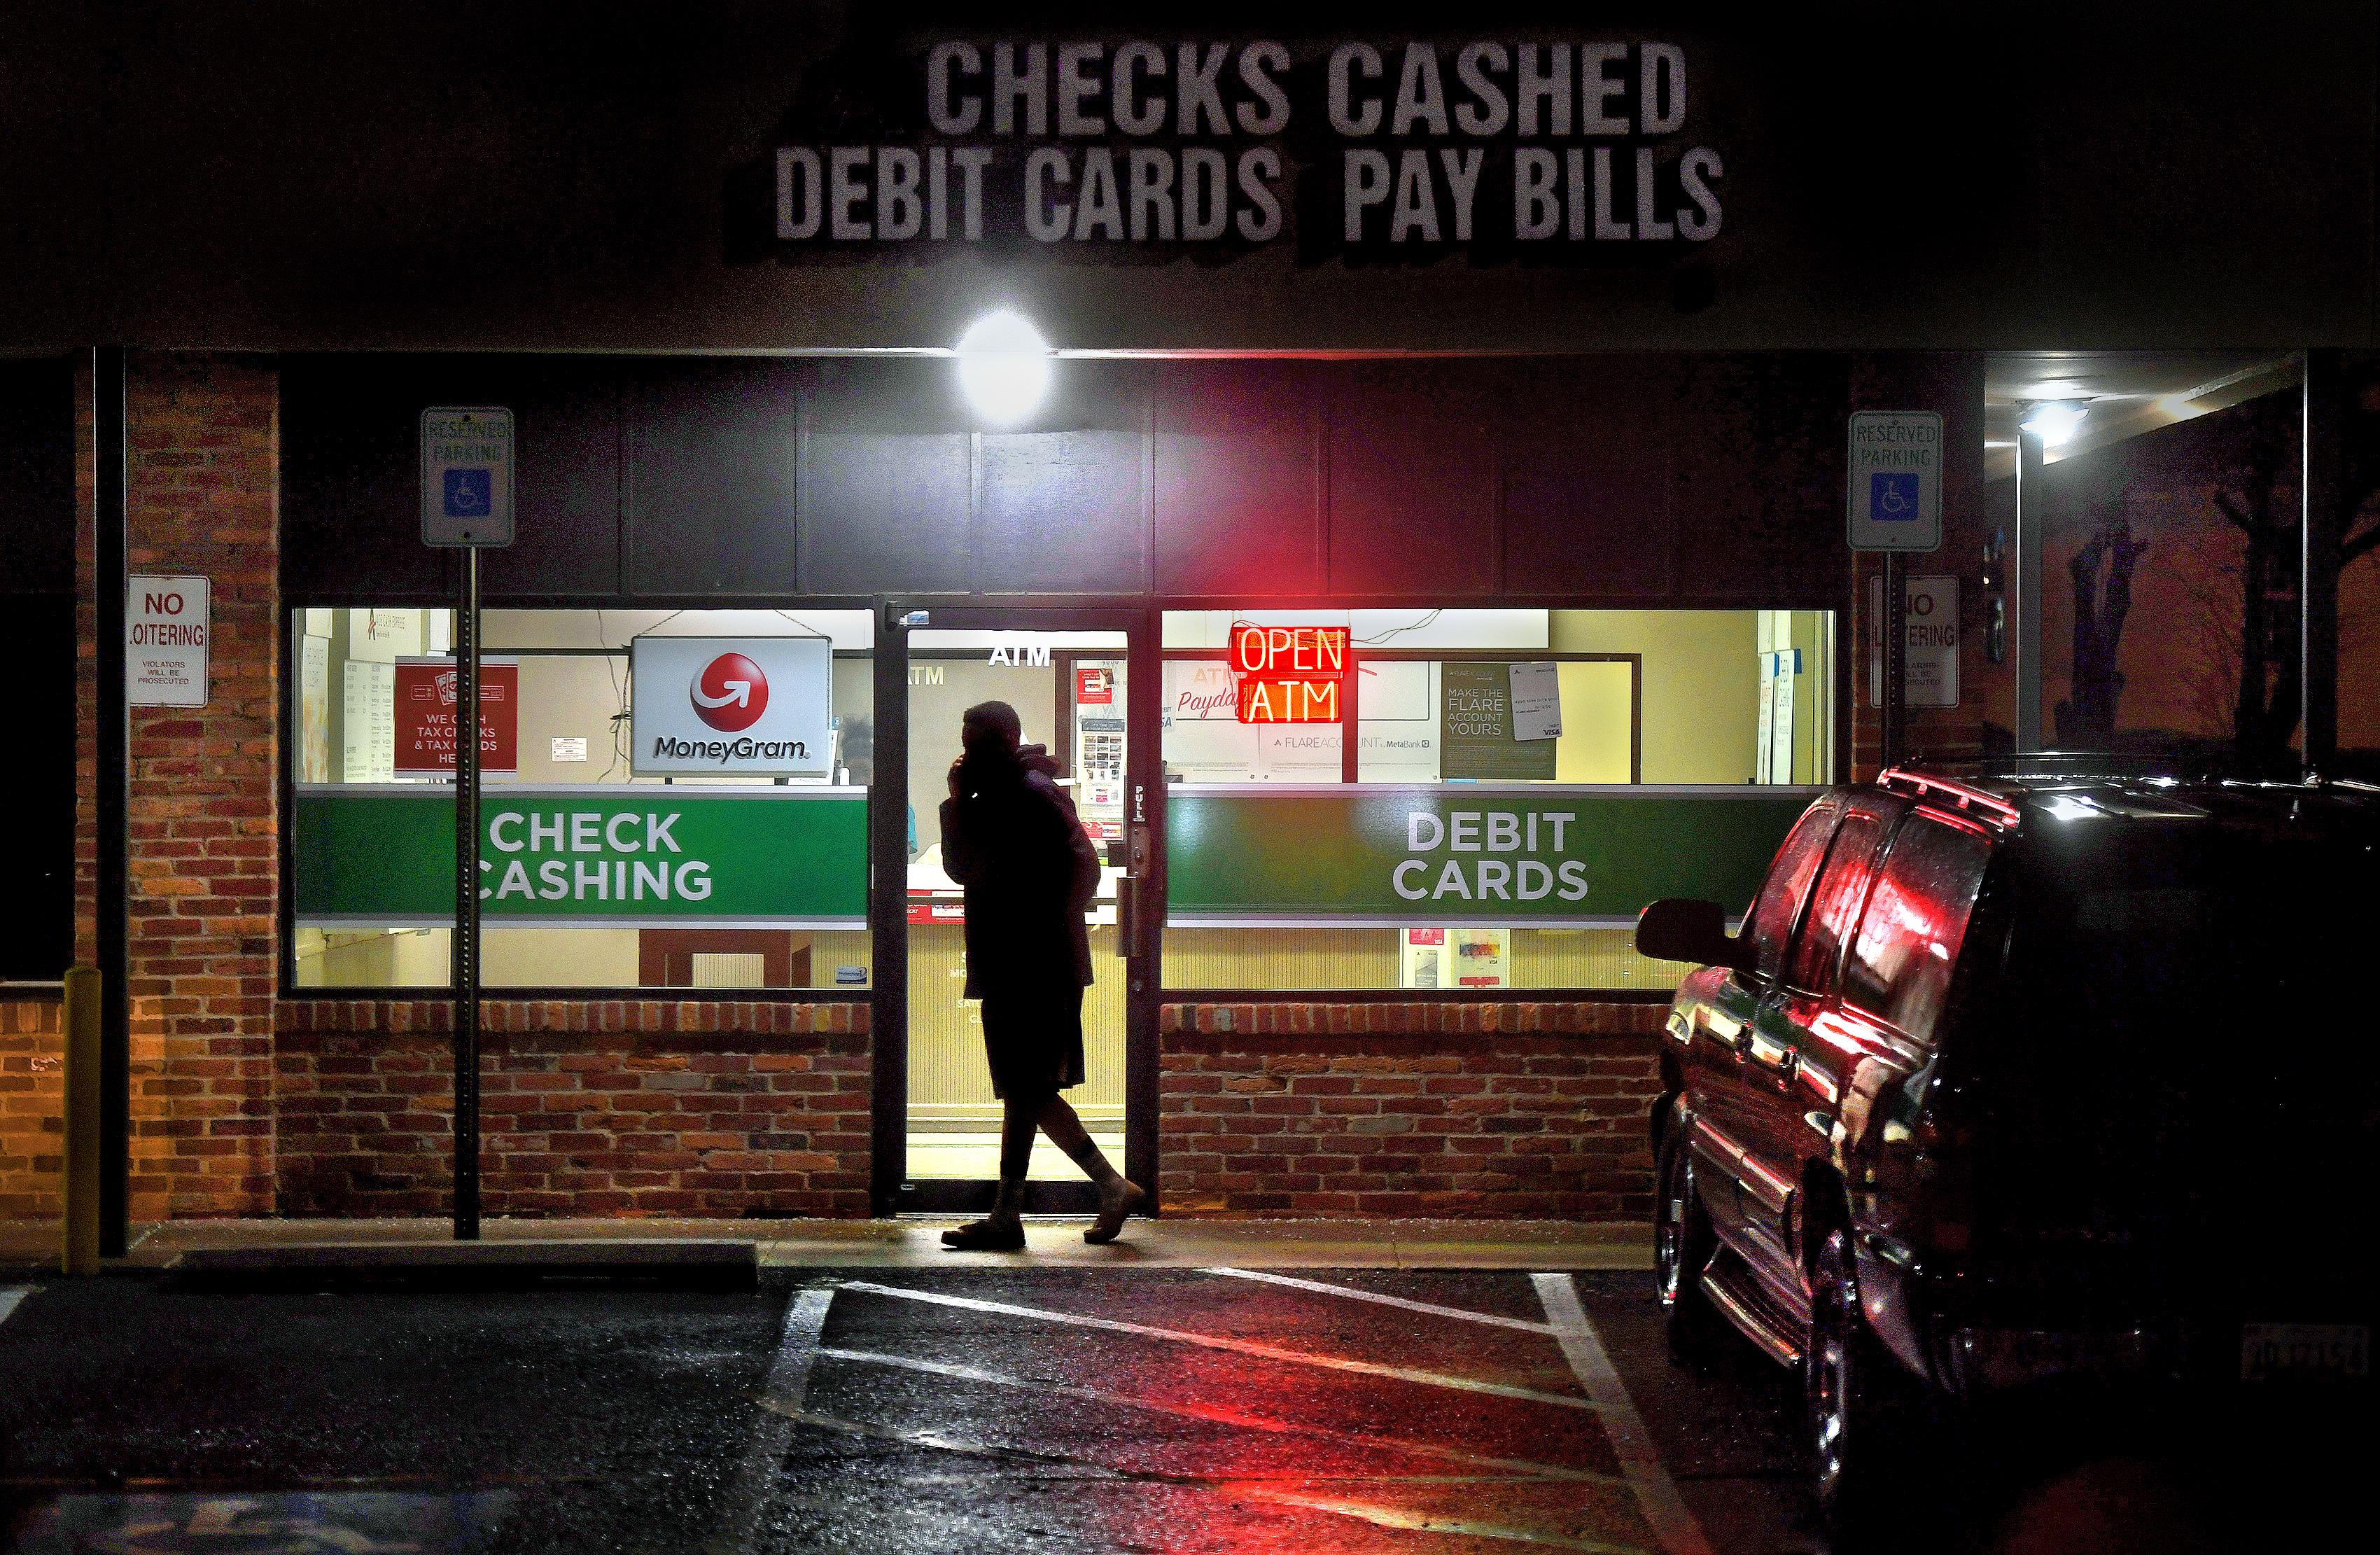 There's a wild US 'debt-to-jail pipeline' built by payday lenders